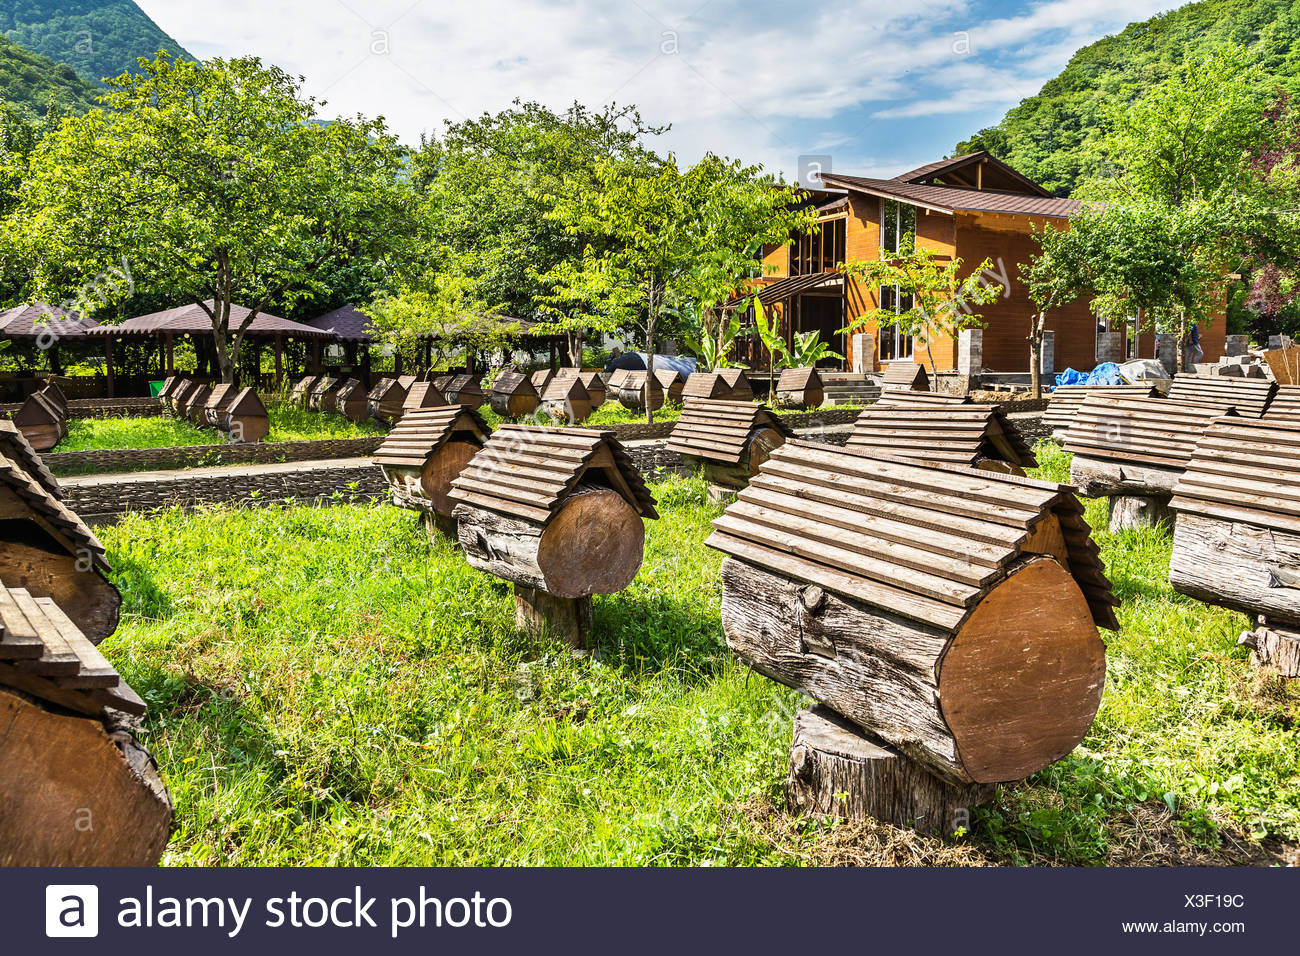 Hives in an apiary - Stock Image